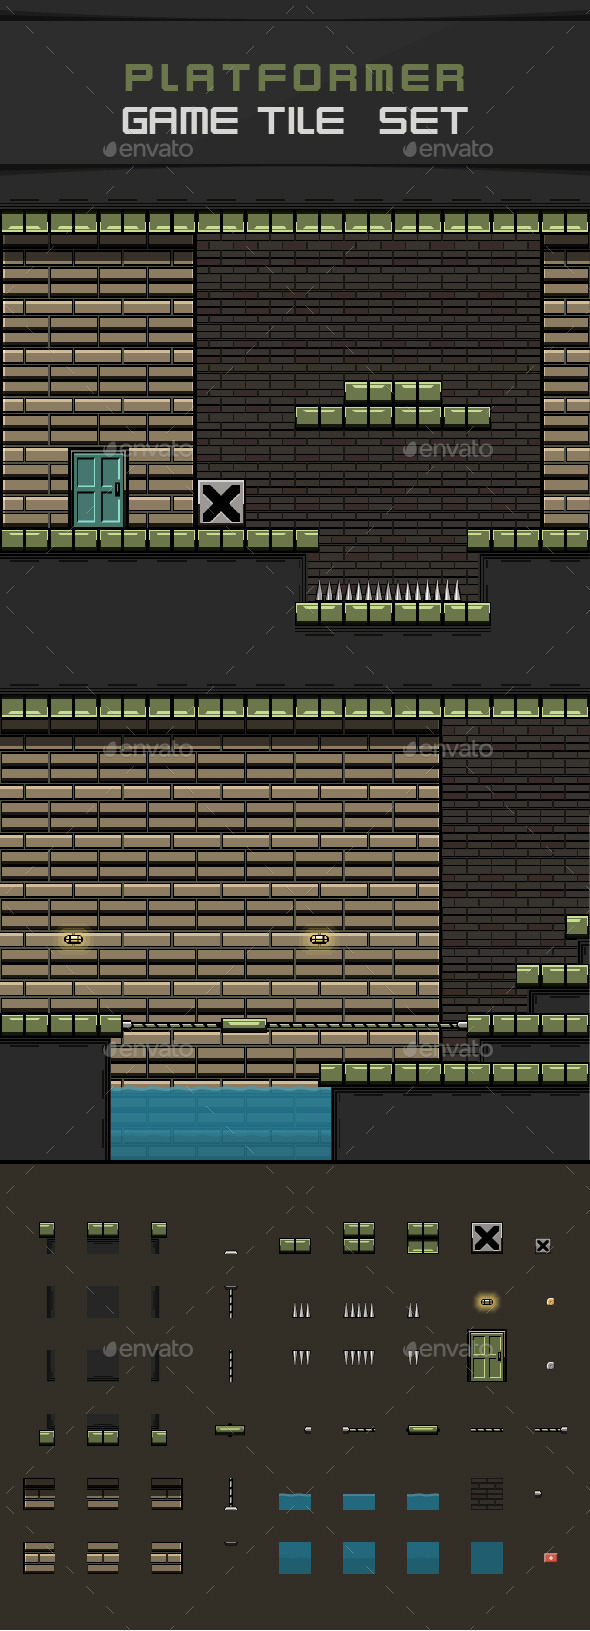 Platformer Game Tile Set (Tilesets)